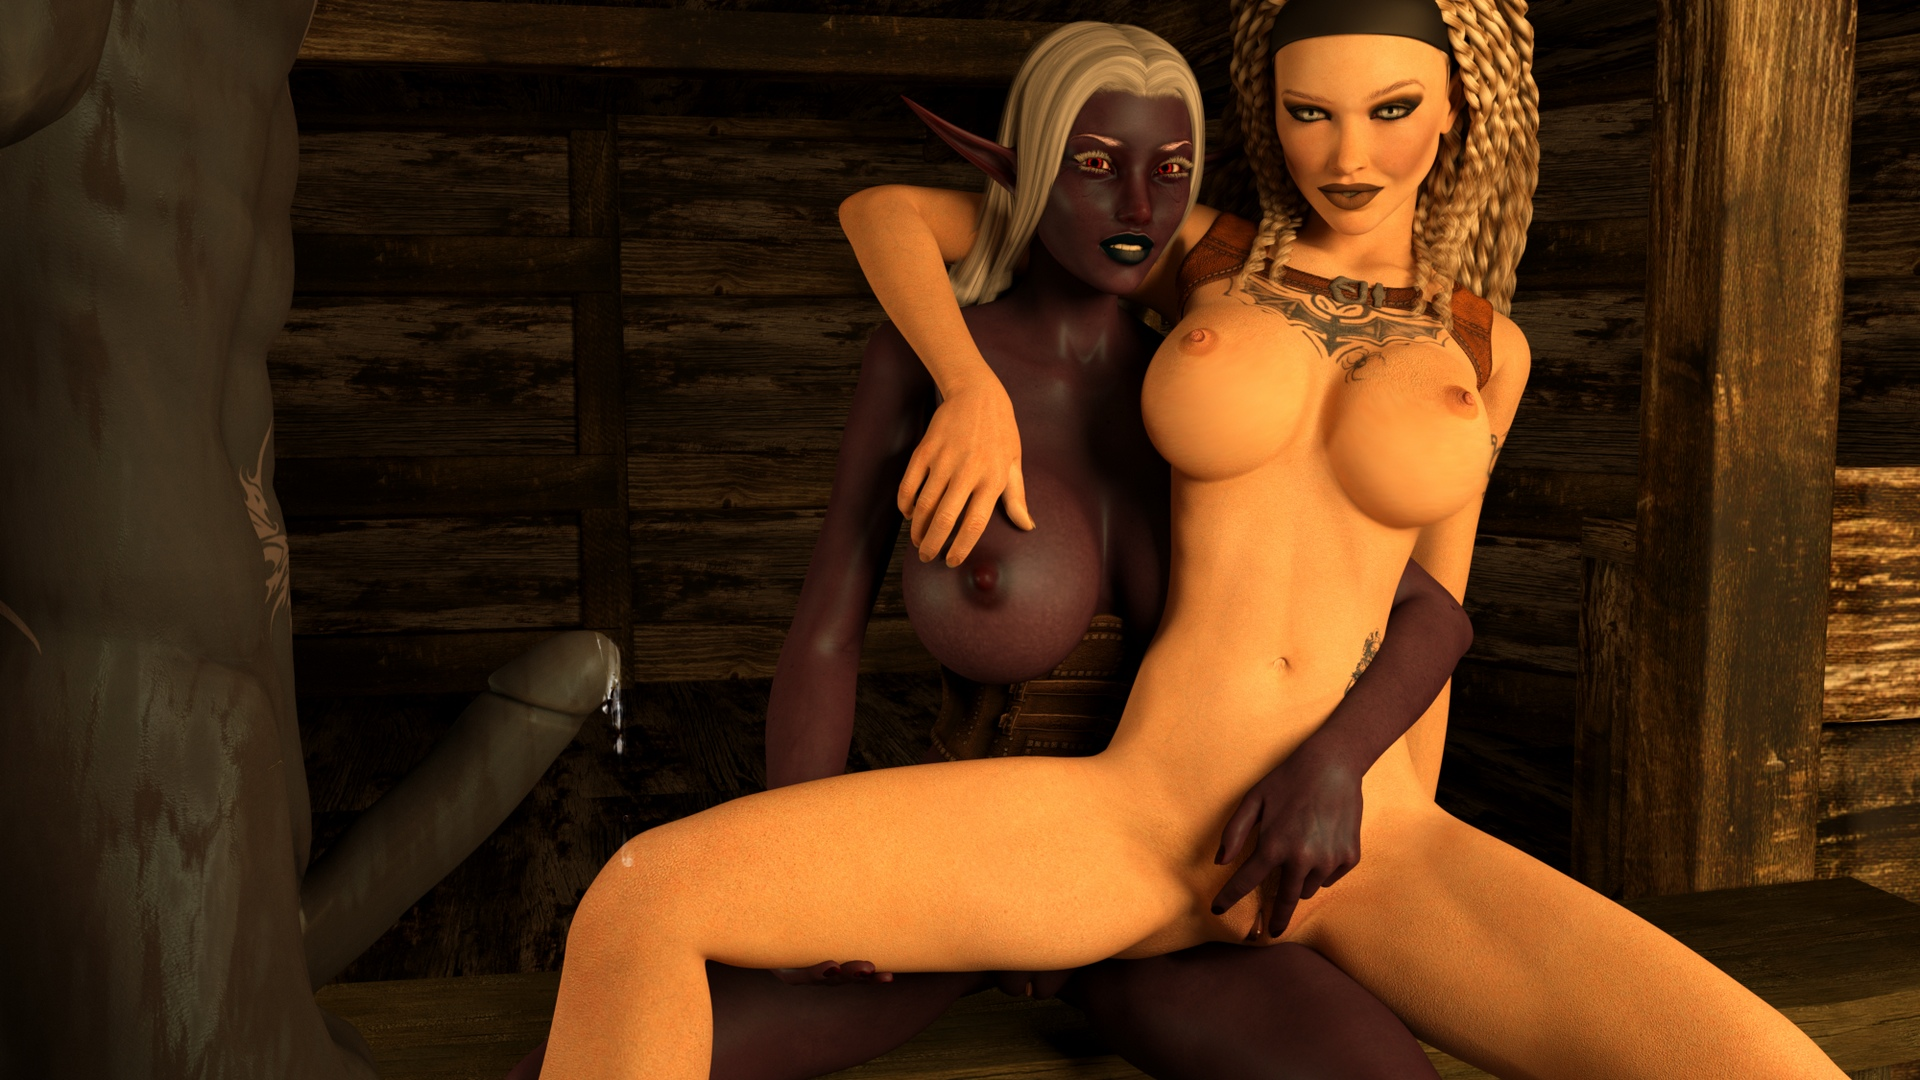 Elf girls nackt pic porncraft slaves